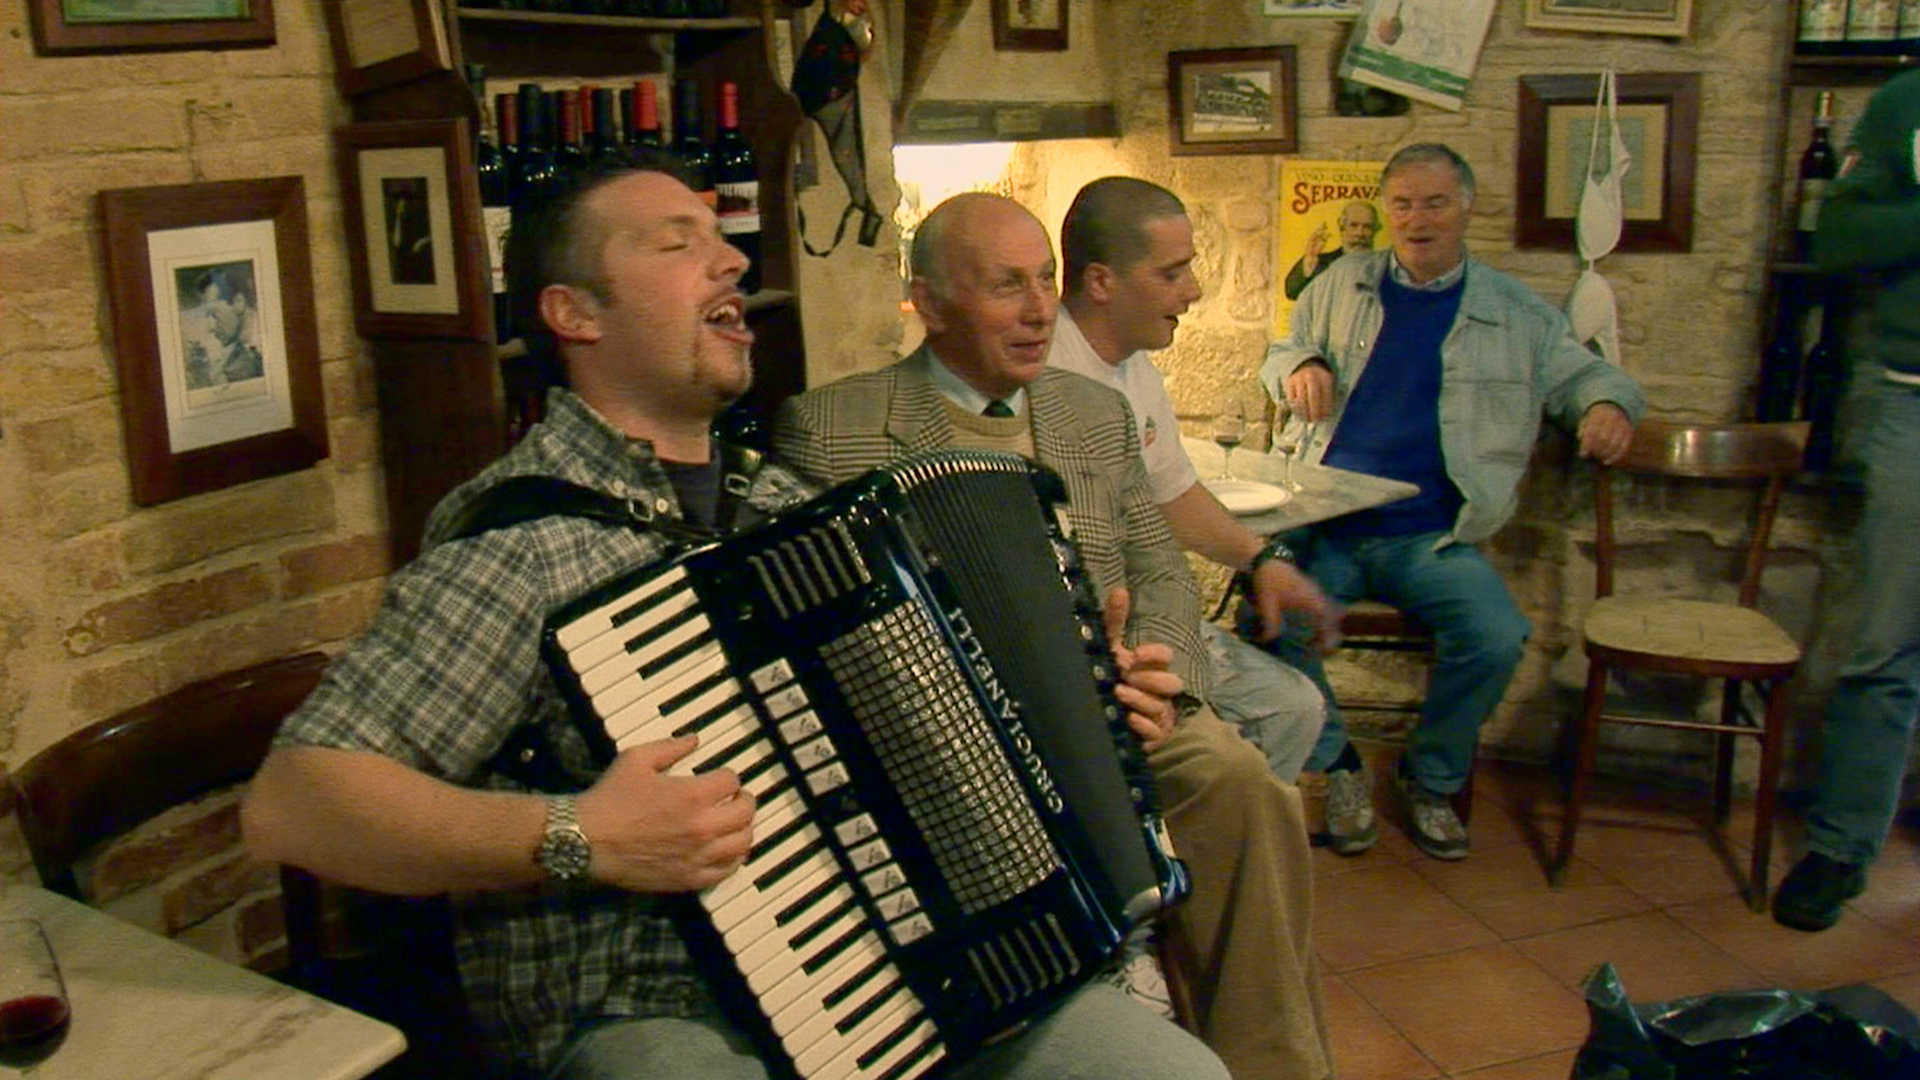 An accordion player in Italy